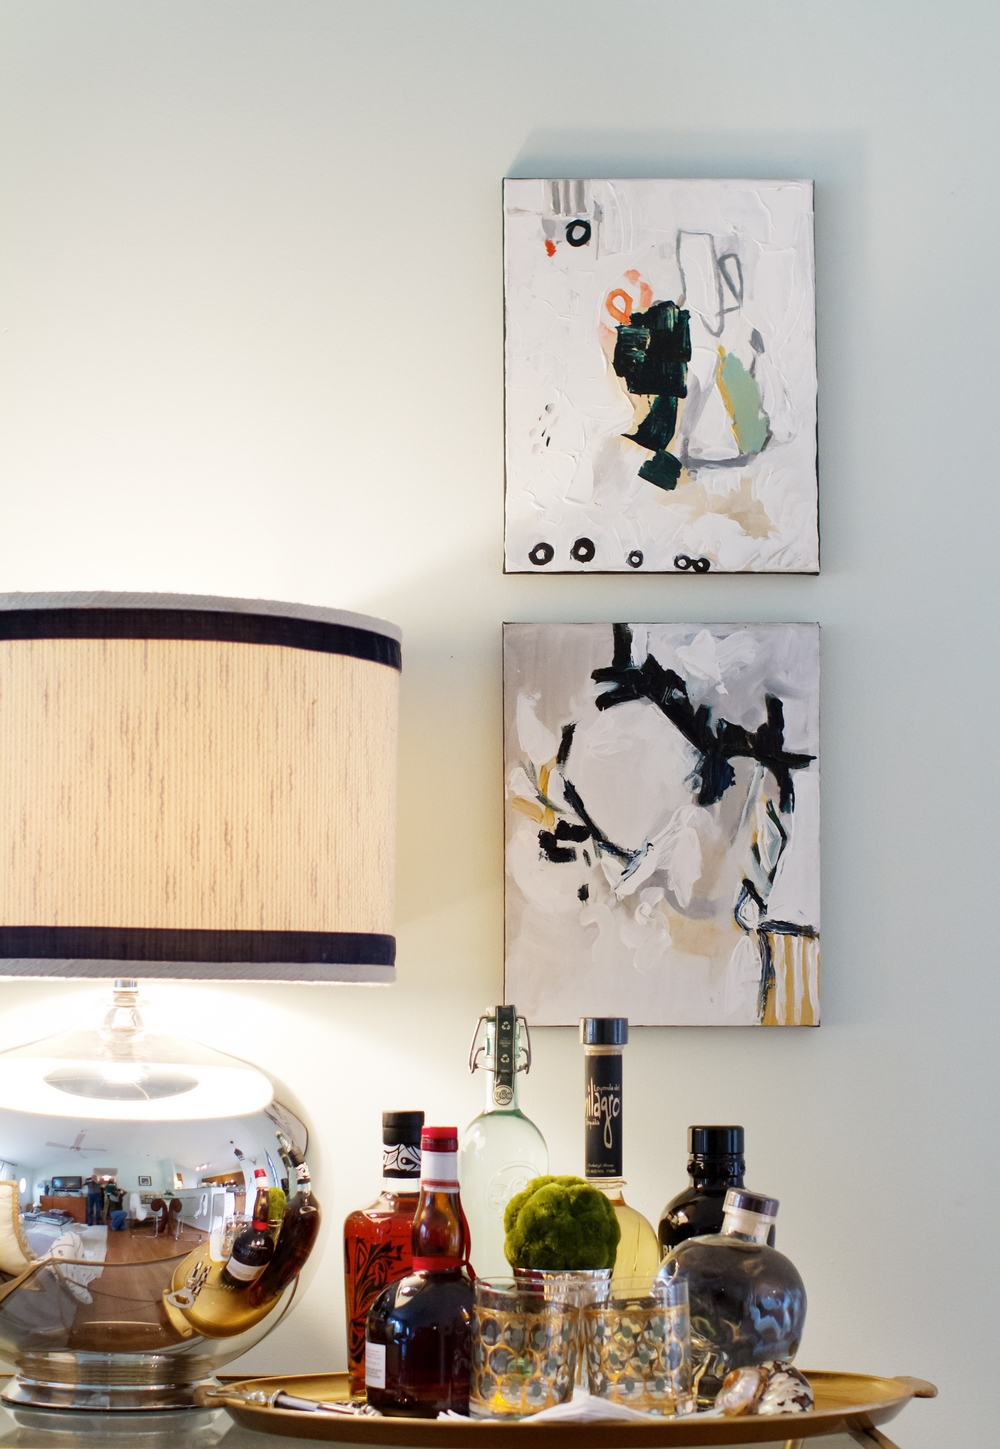 Velvet tape trim was added to a stock lamp shade to add a custom layer.  Abstract artwork punctuated the young couple's vibe.